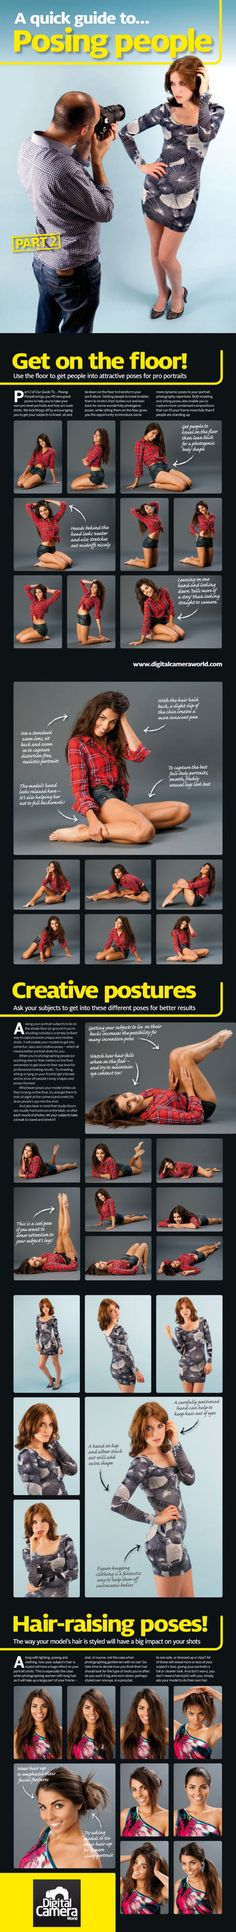 40 More Portrait Photography Ideas | Infographic